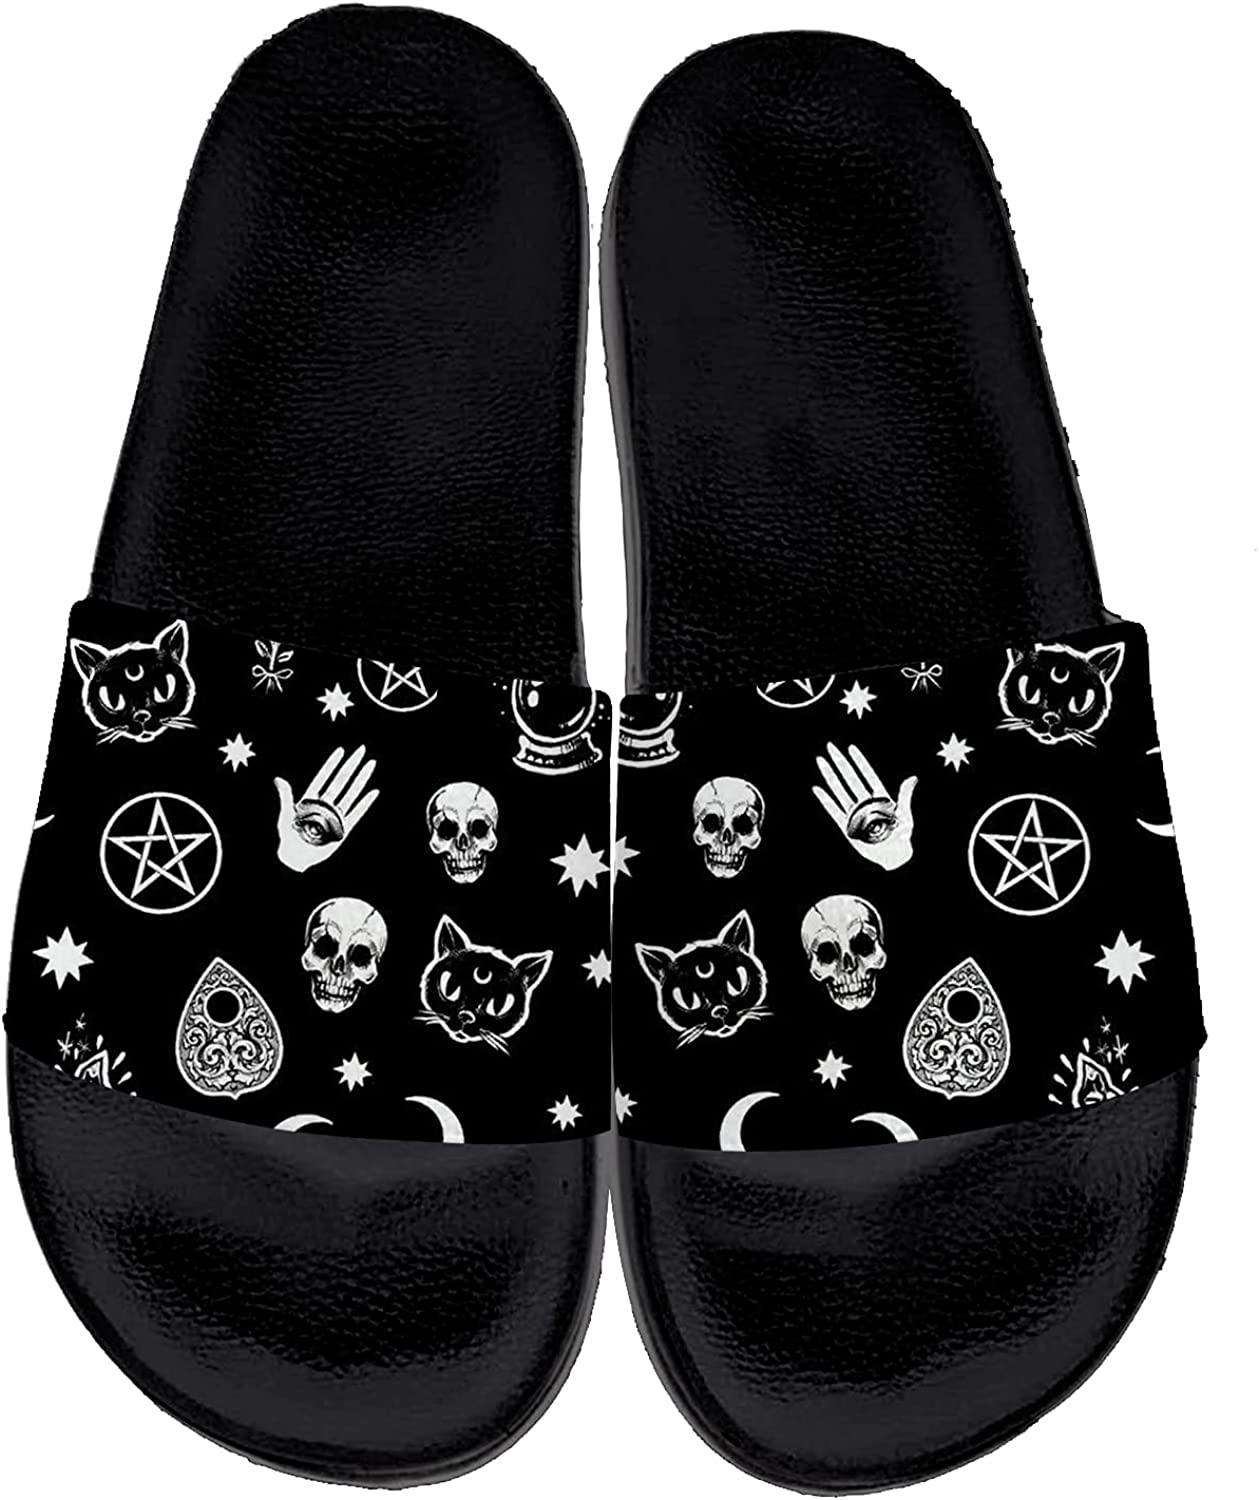 Womens Mens Ouija Board Slides Sandals Casual Comfort Flat Sandals Non-Slip Beach Slippers Shoes Gifts for Friends